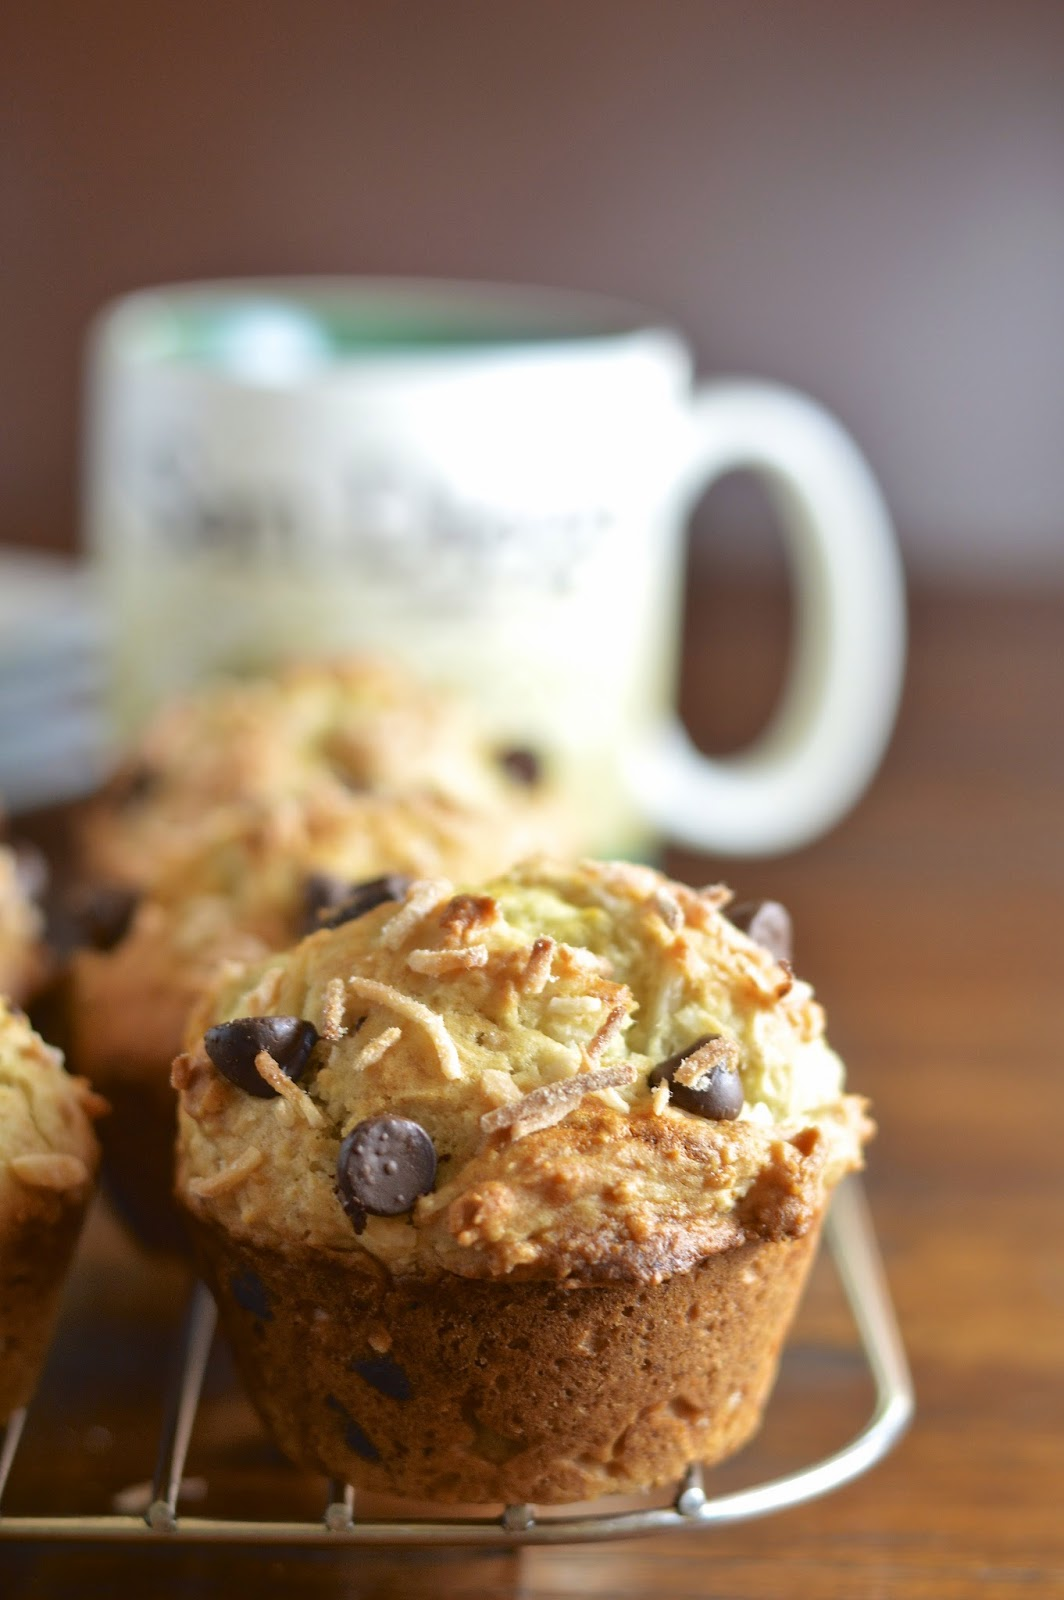 These banana coconut chocolate muffins will sweeten your morning and include a gluten free option.